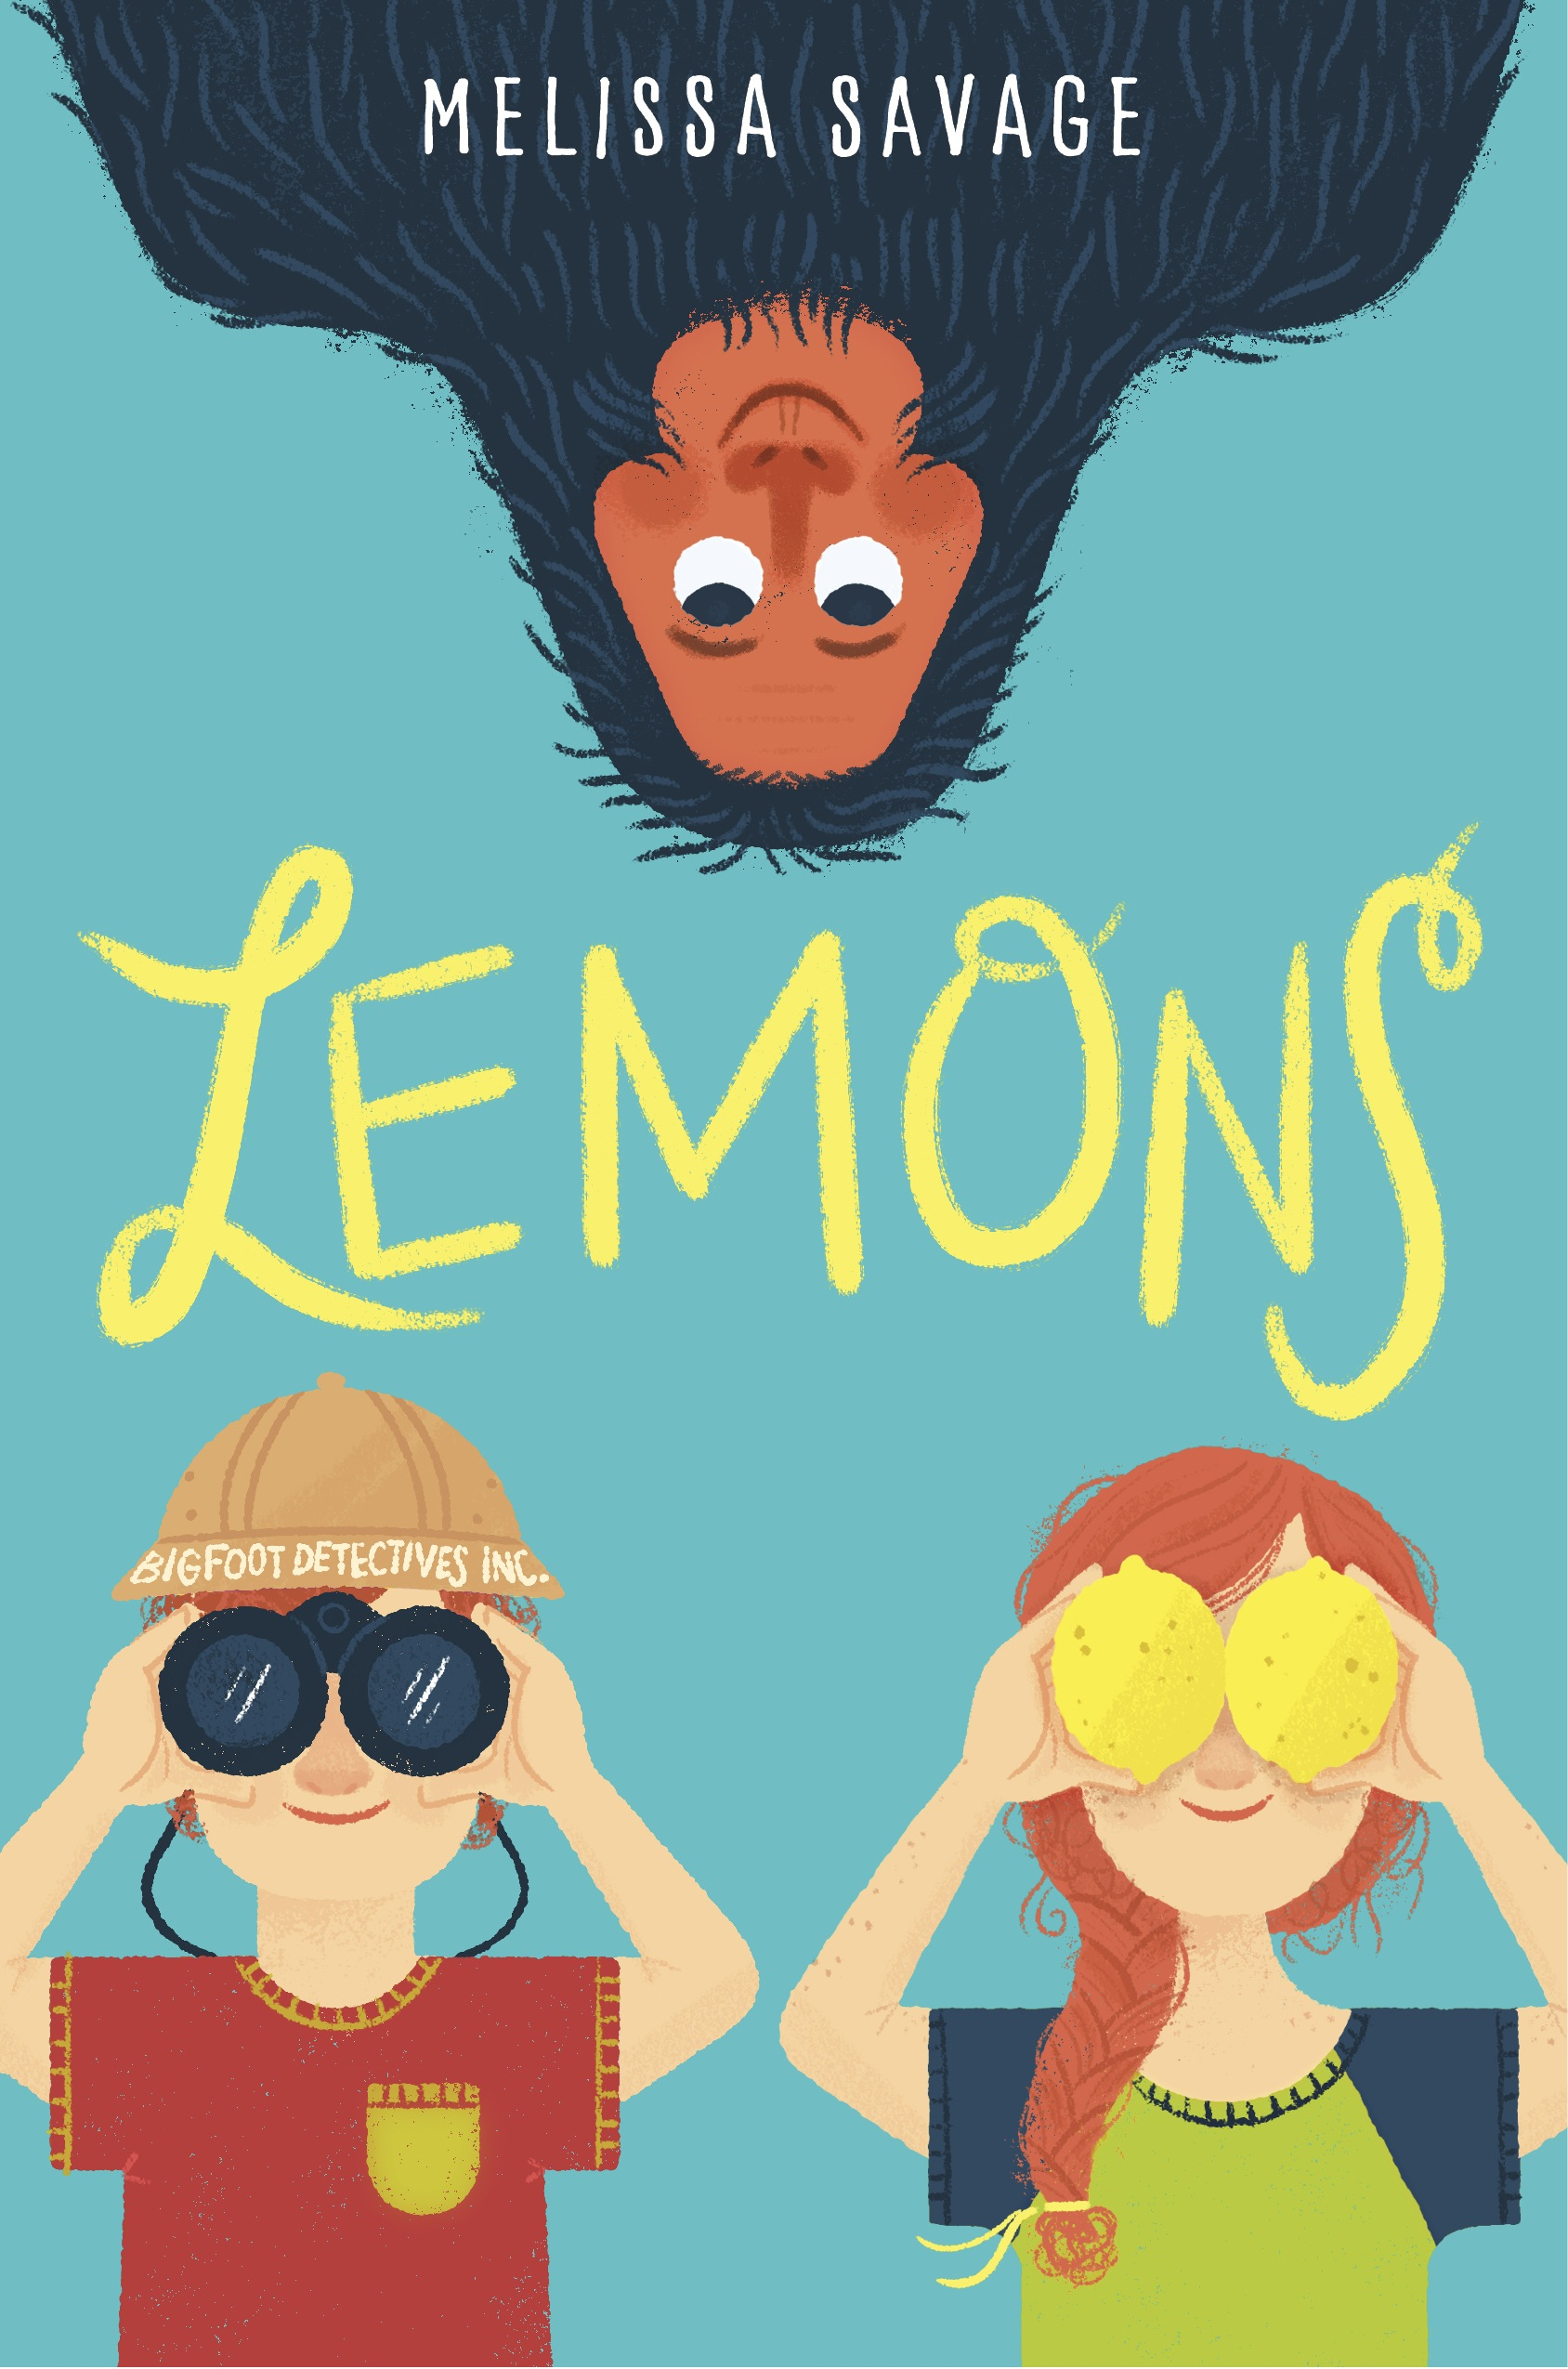 Lemons by Melissa Savage